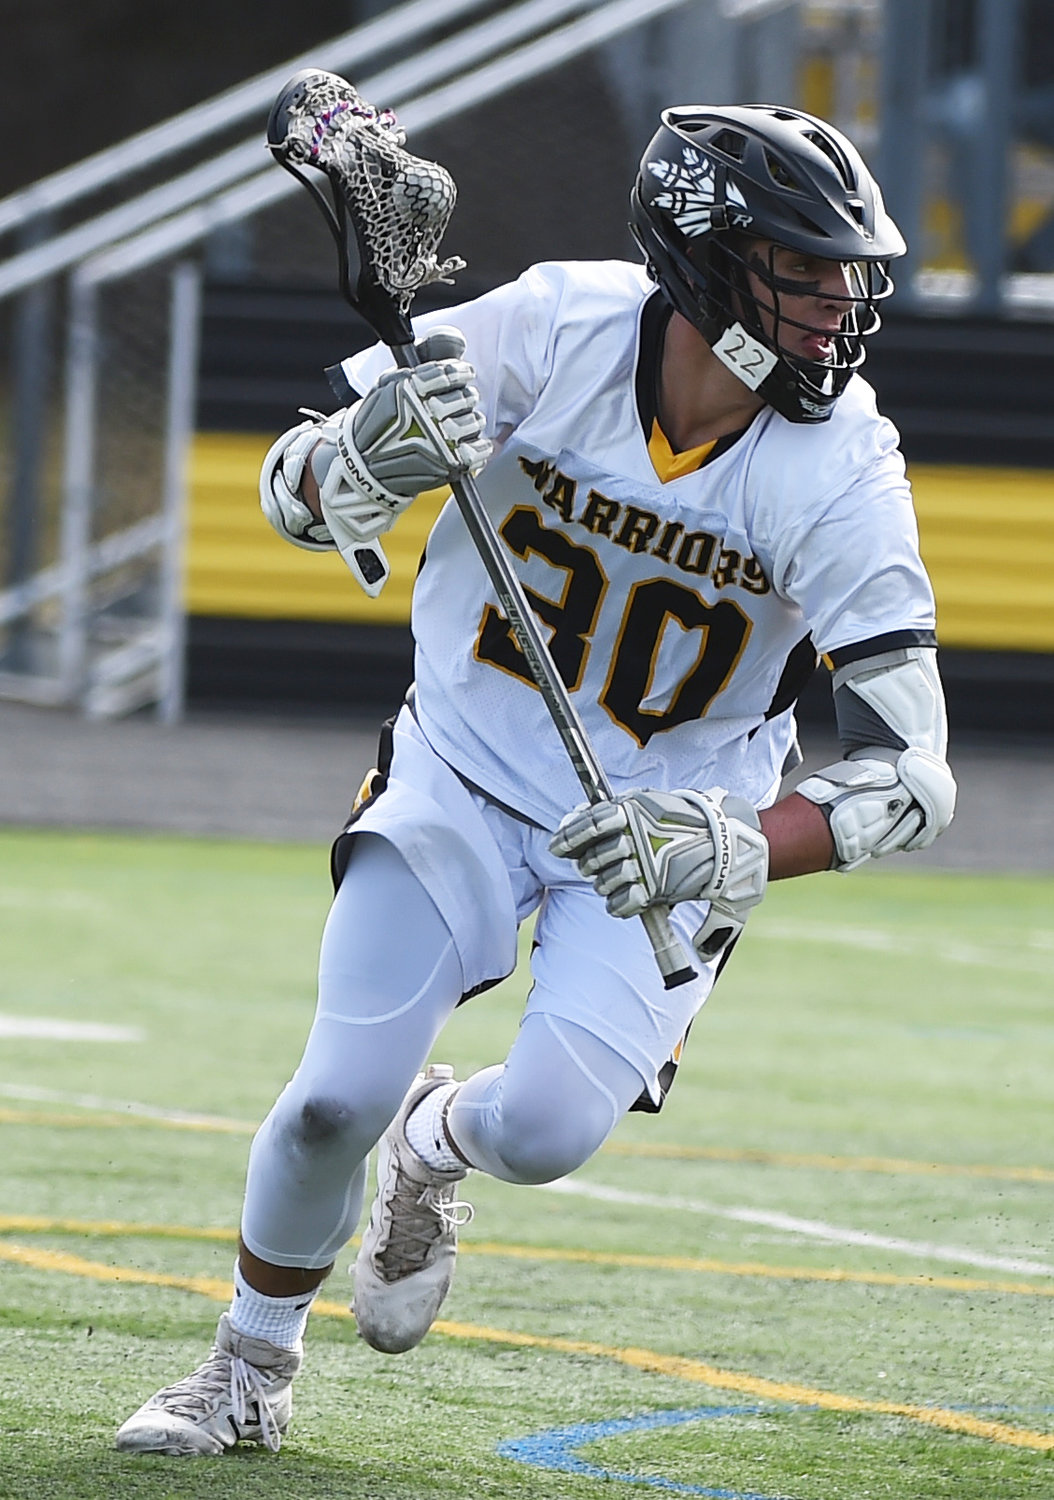 Junior Ethan Insinga had three goals last Saturday as the Warriors knocked off Mineola, 8-6, for their second straight Conference C victory.